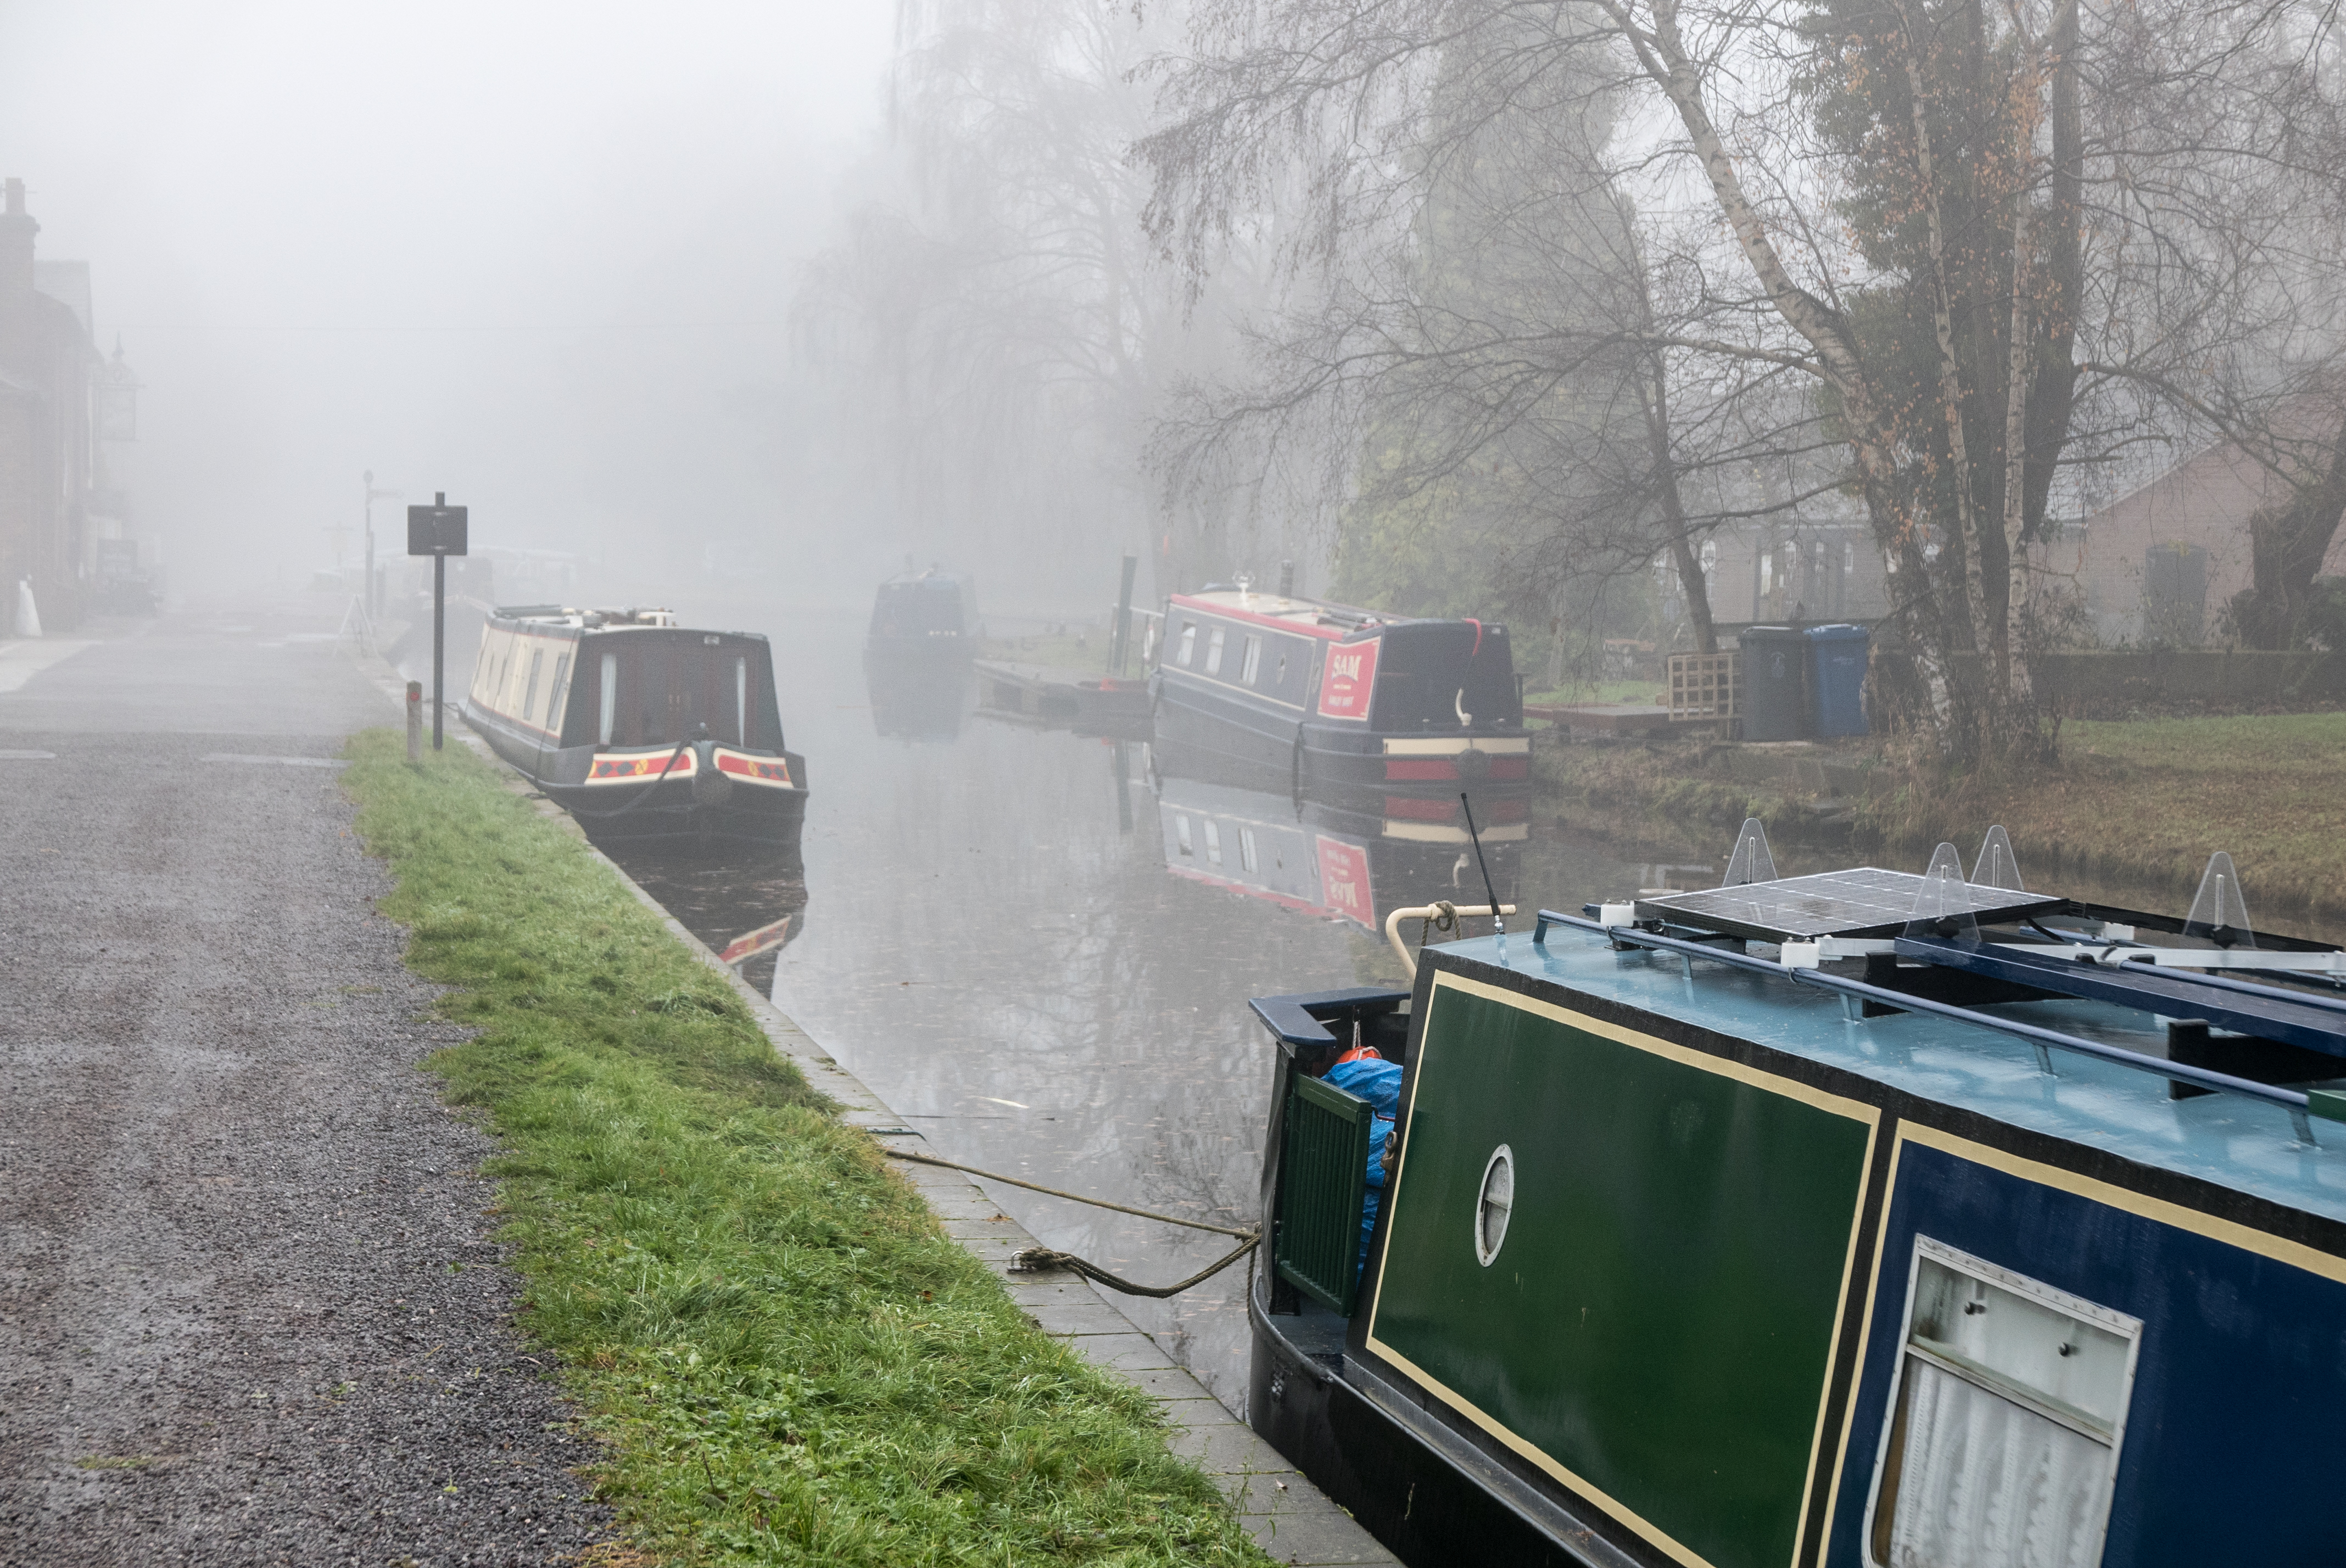 Canal_PPC_18March_Source.jpg